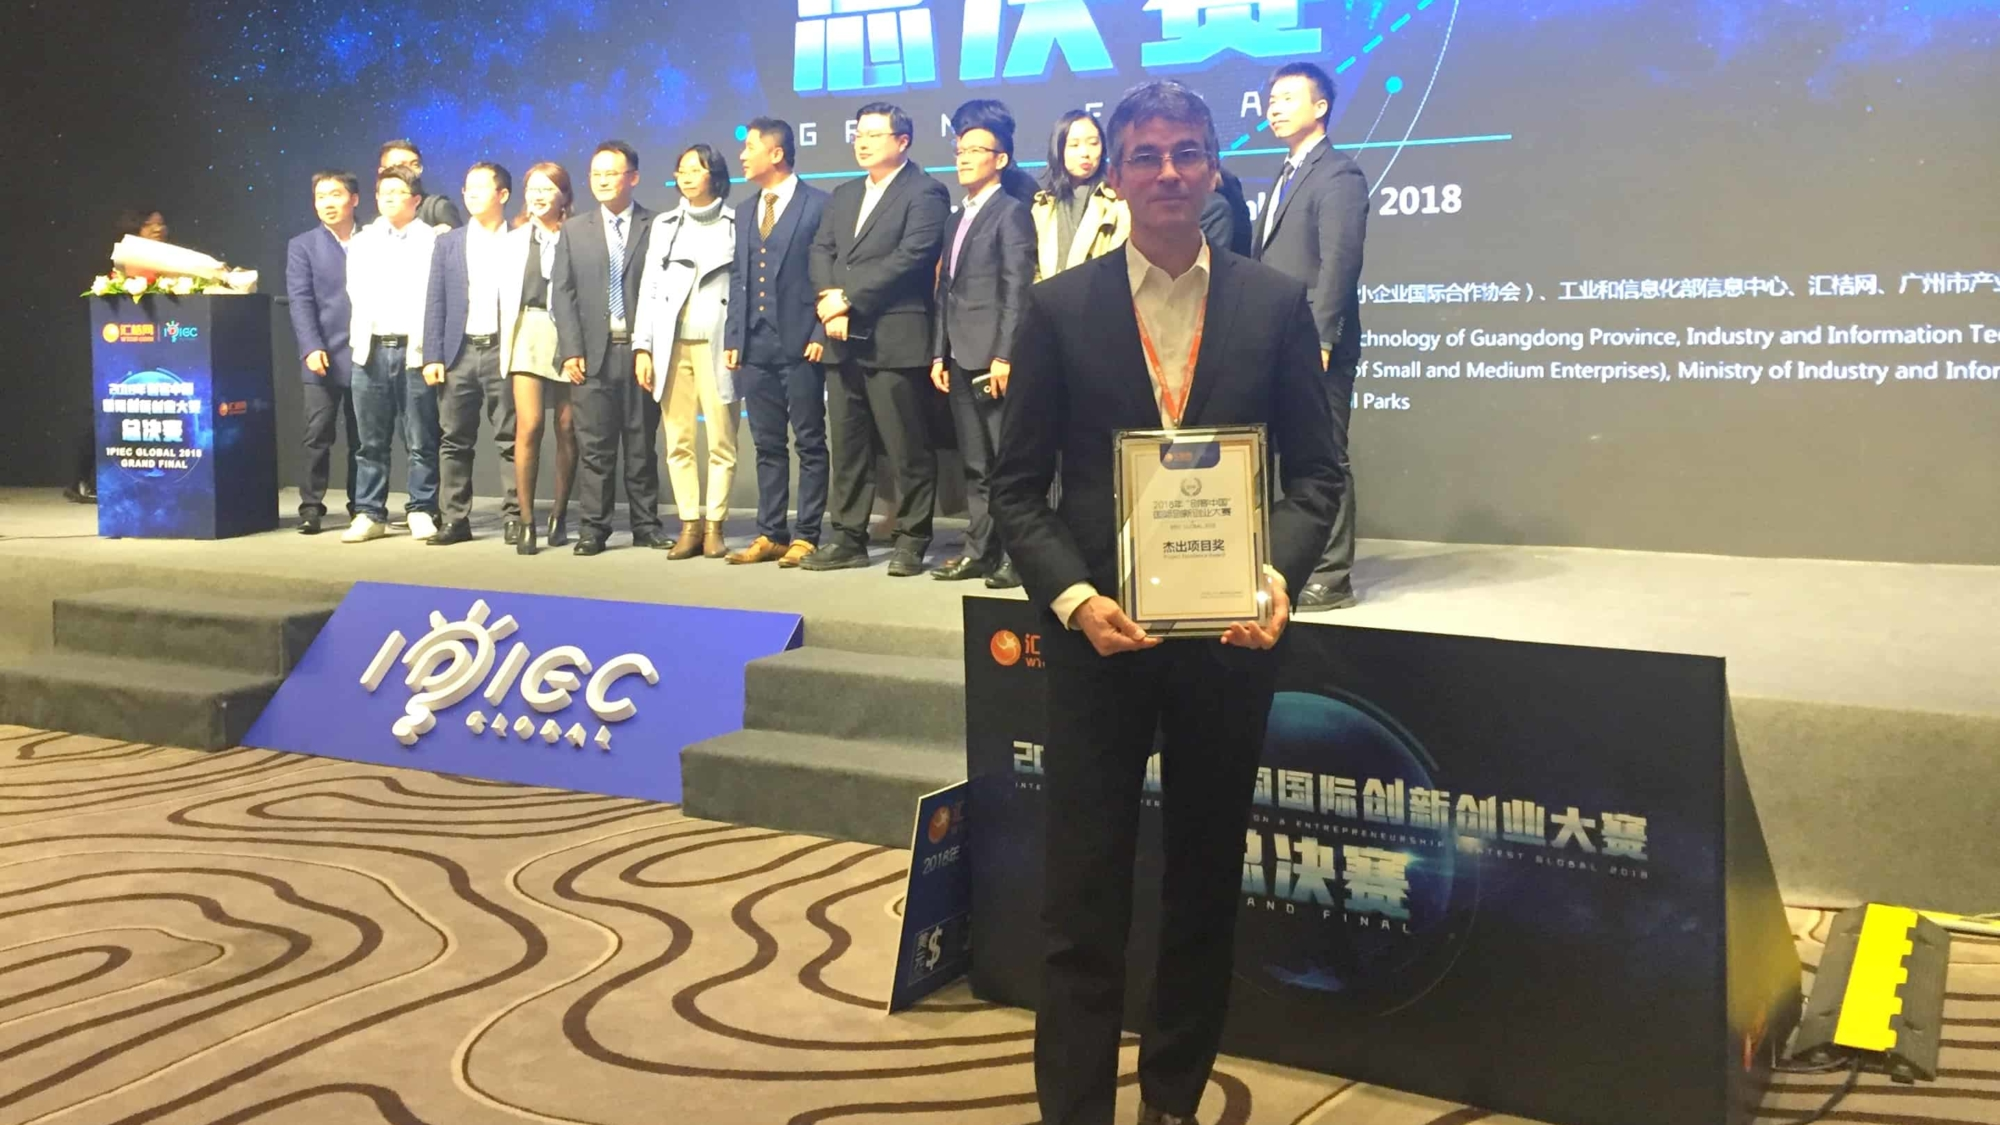 Amphasys awarded with project excellence award at IPIEC Global